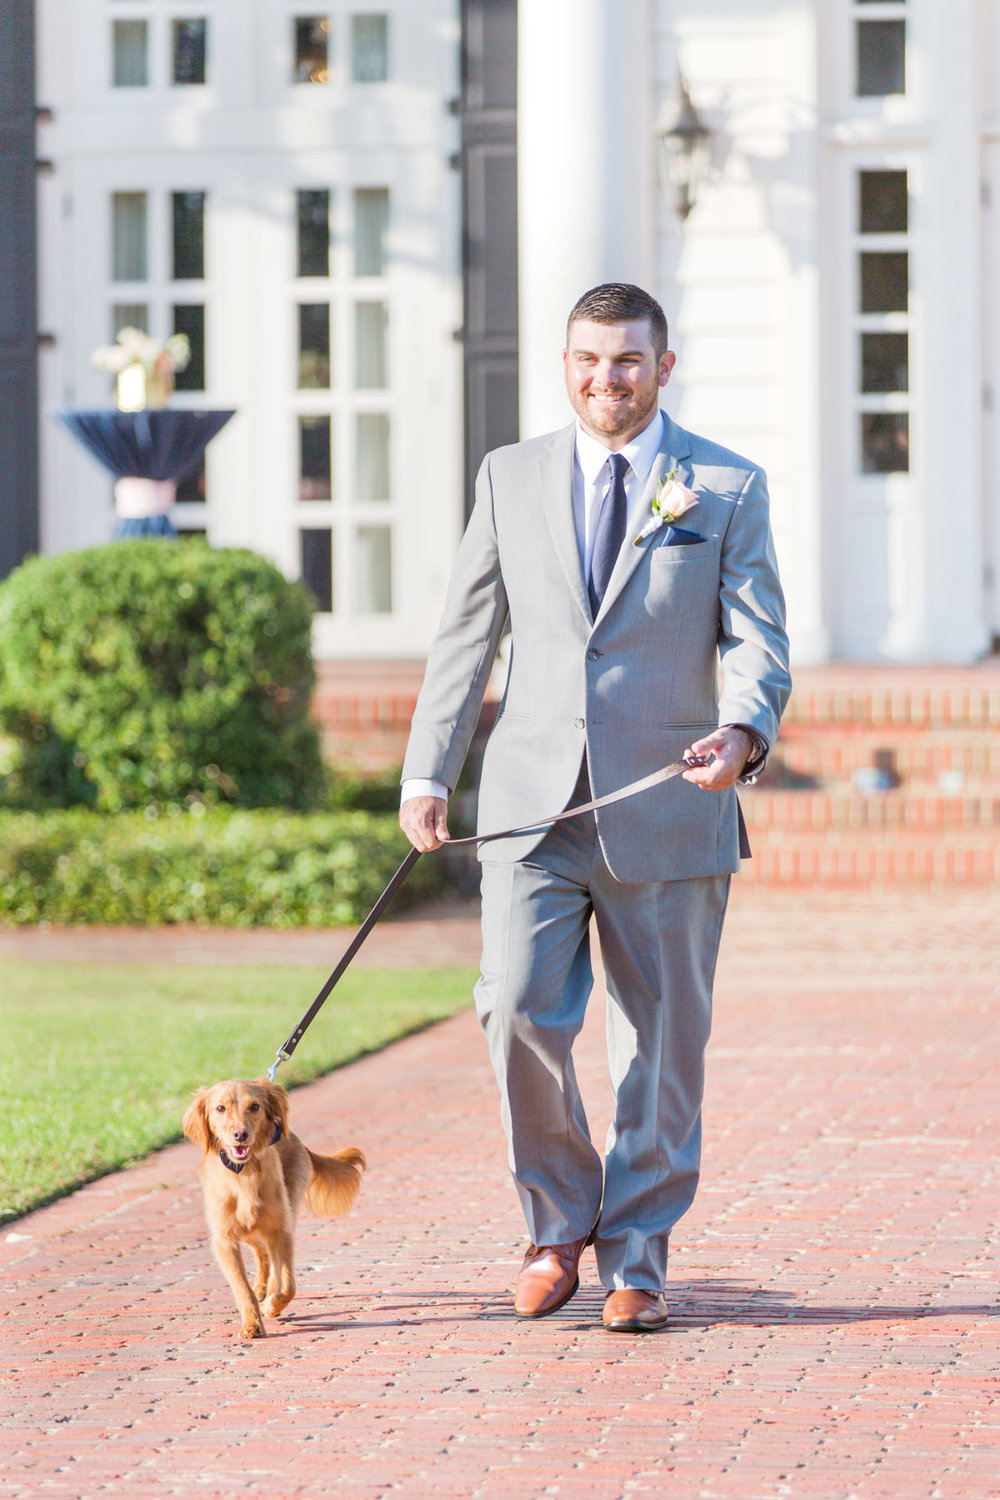 Groom, Dan with Dog Ozzie.jpg